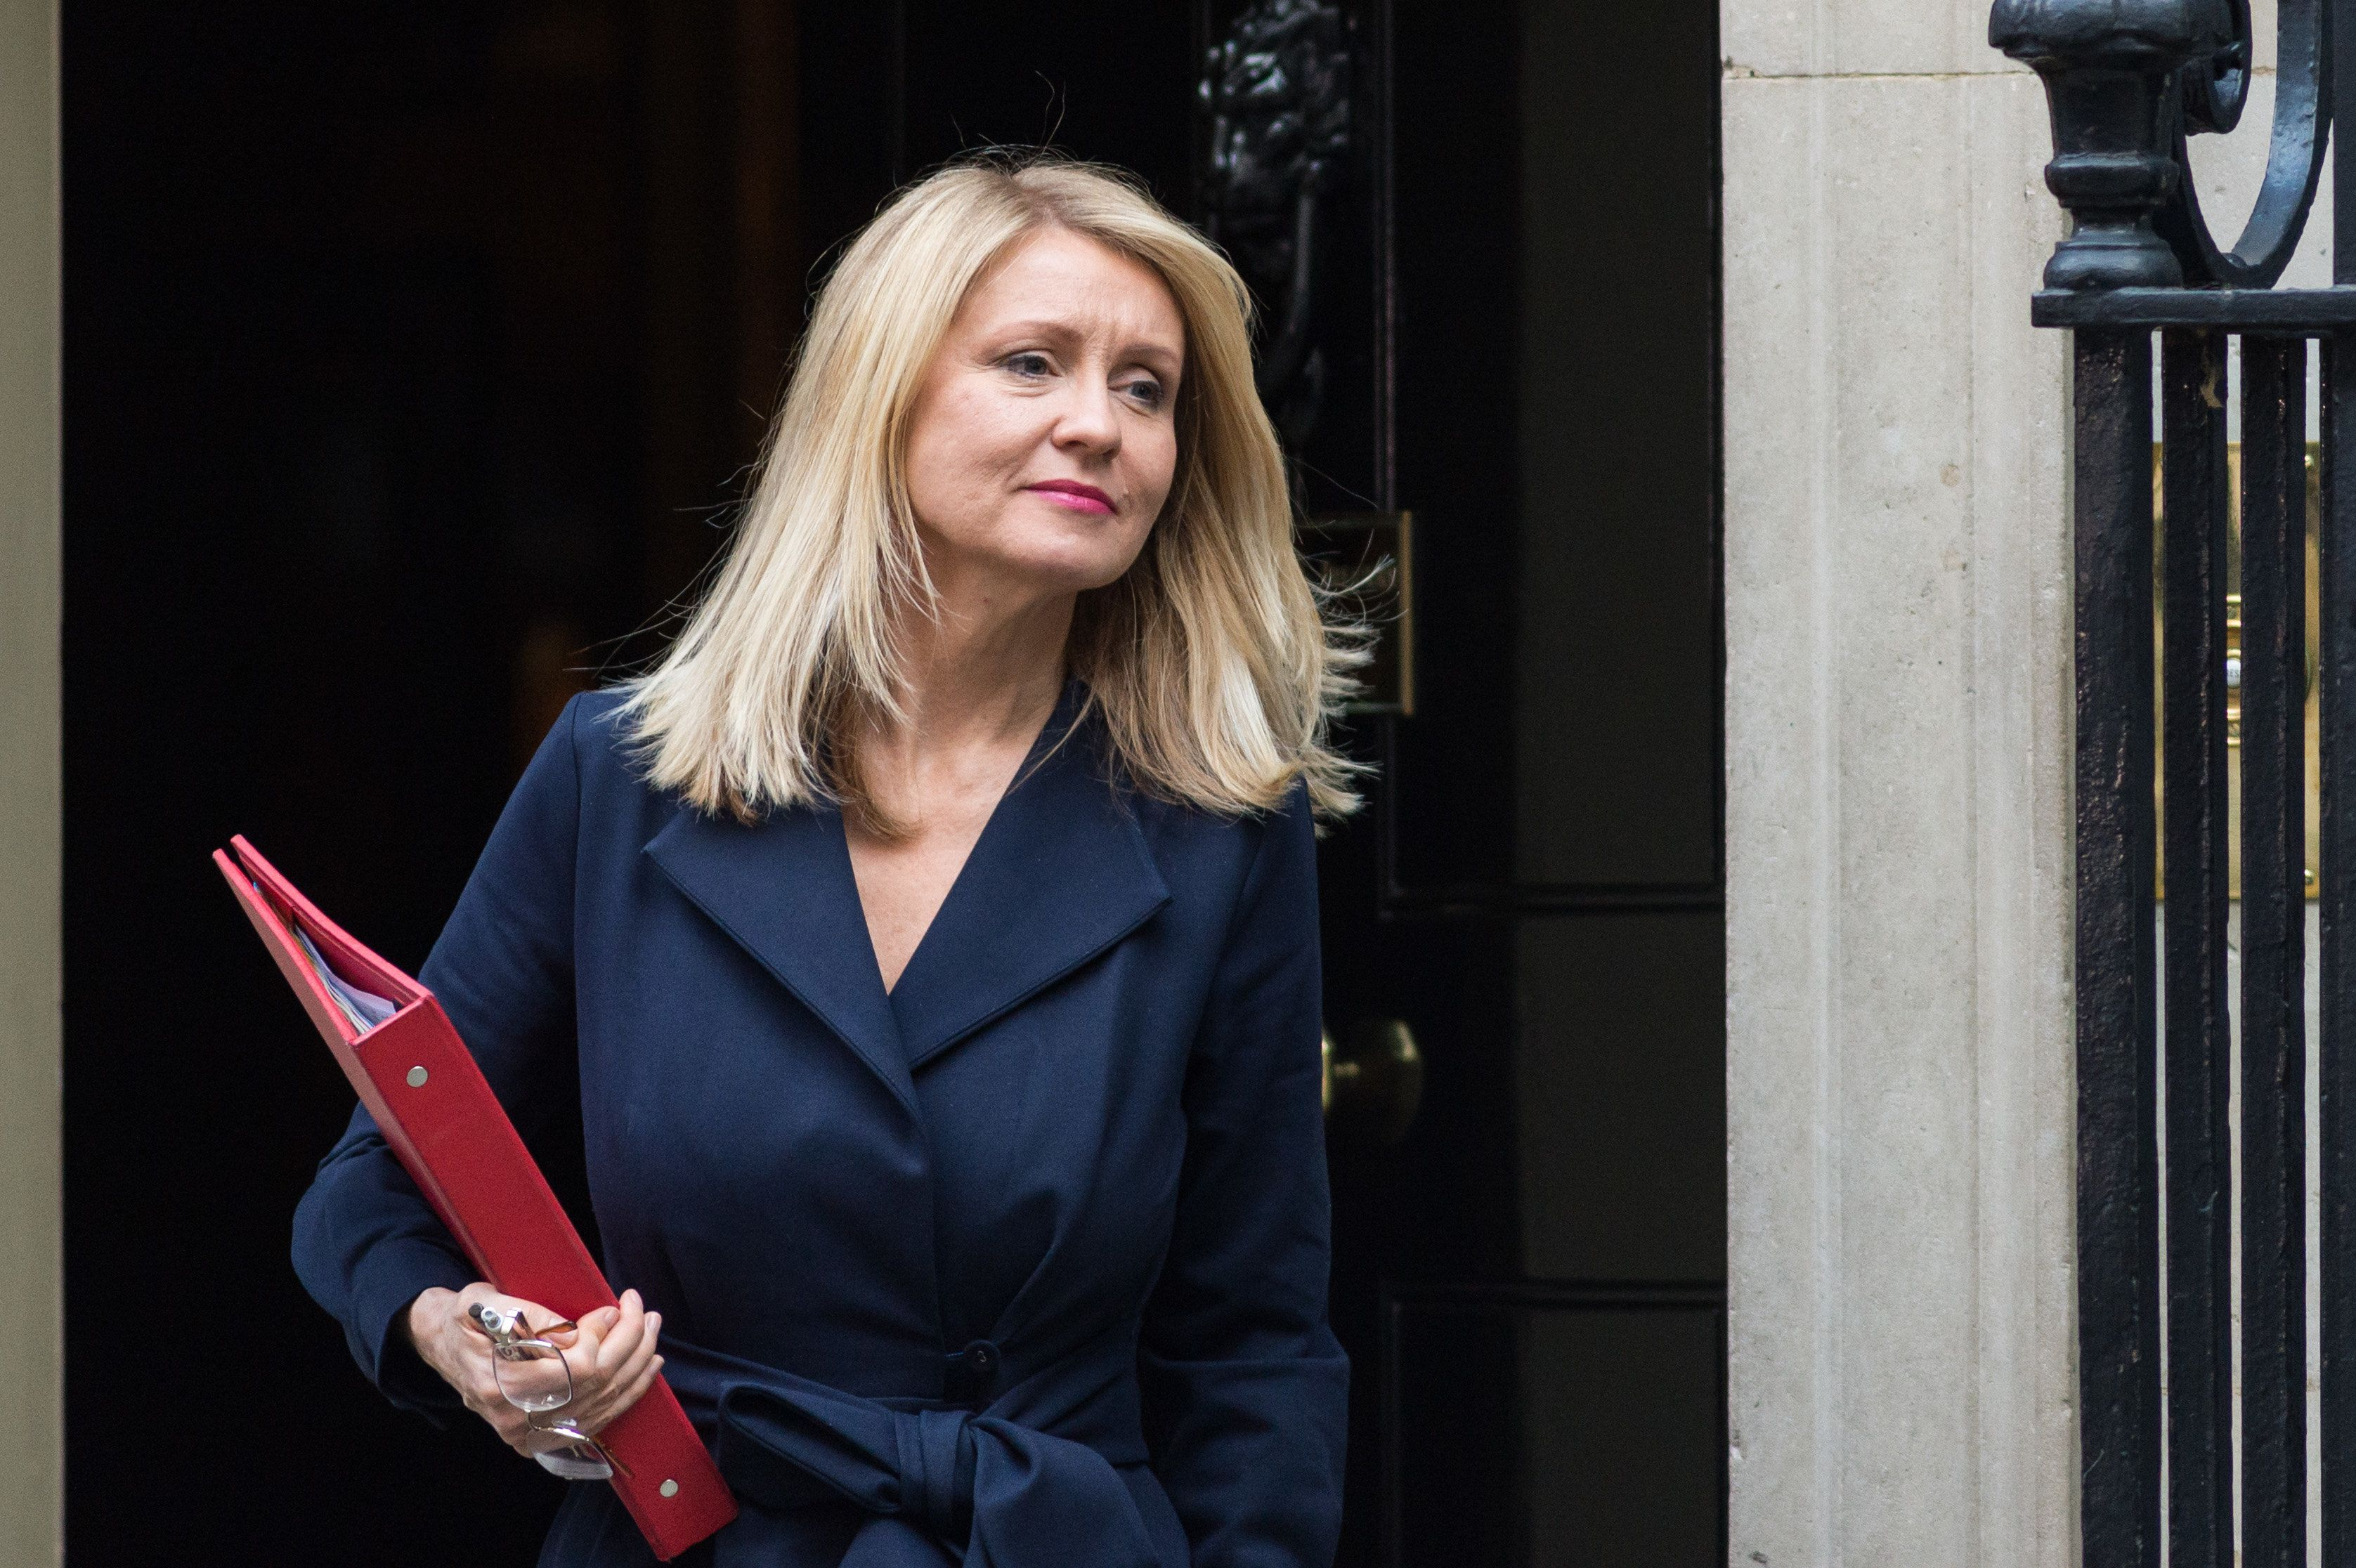 Esther McVey's Universal Credit Claim Sparks Twitter Row With Mental Health